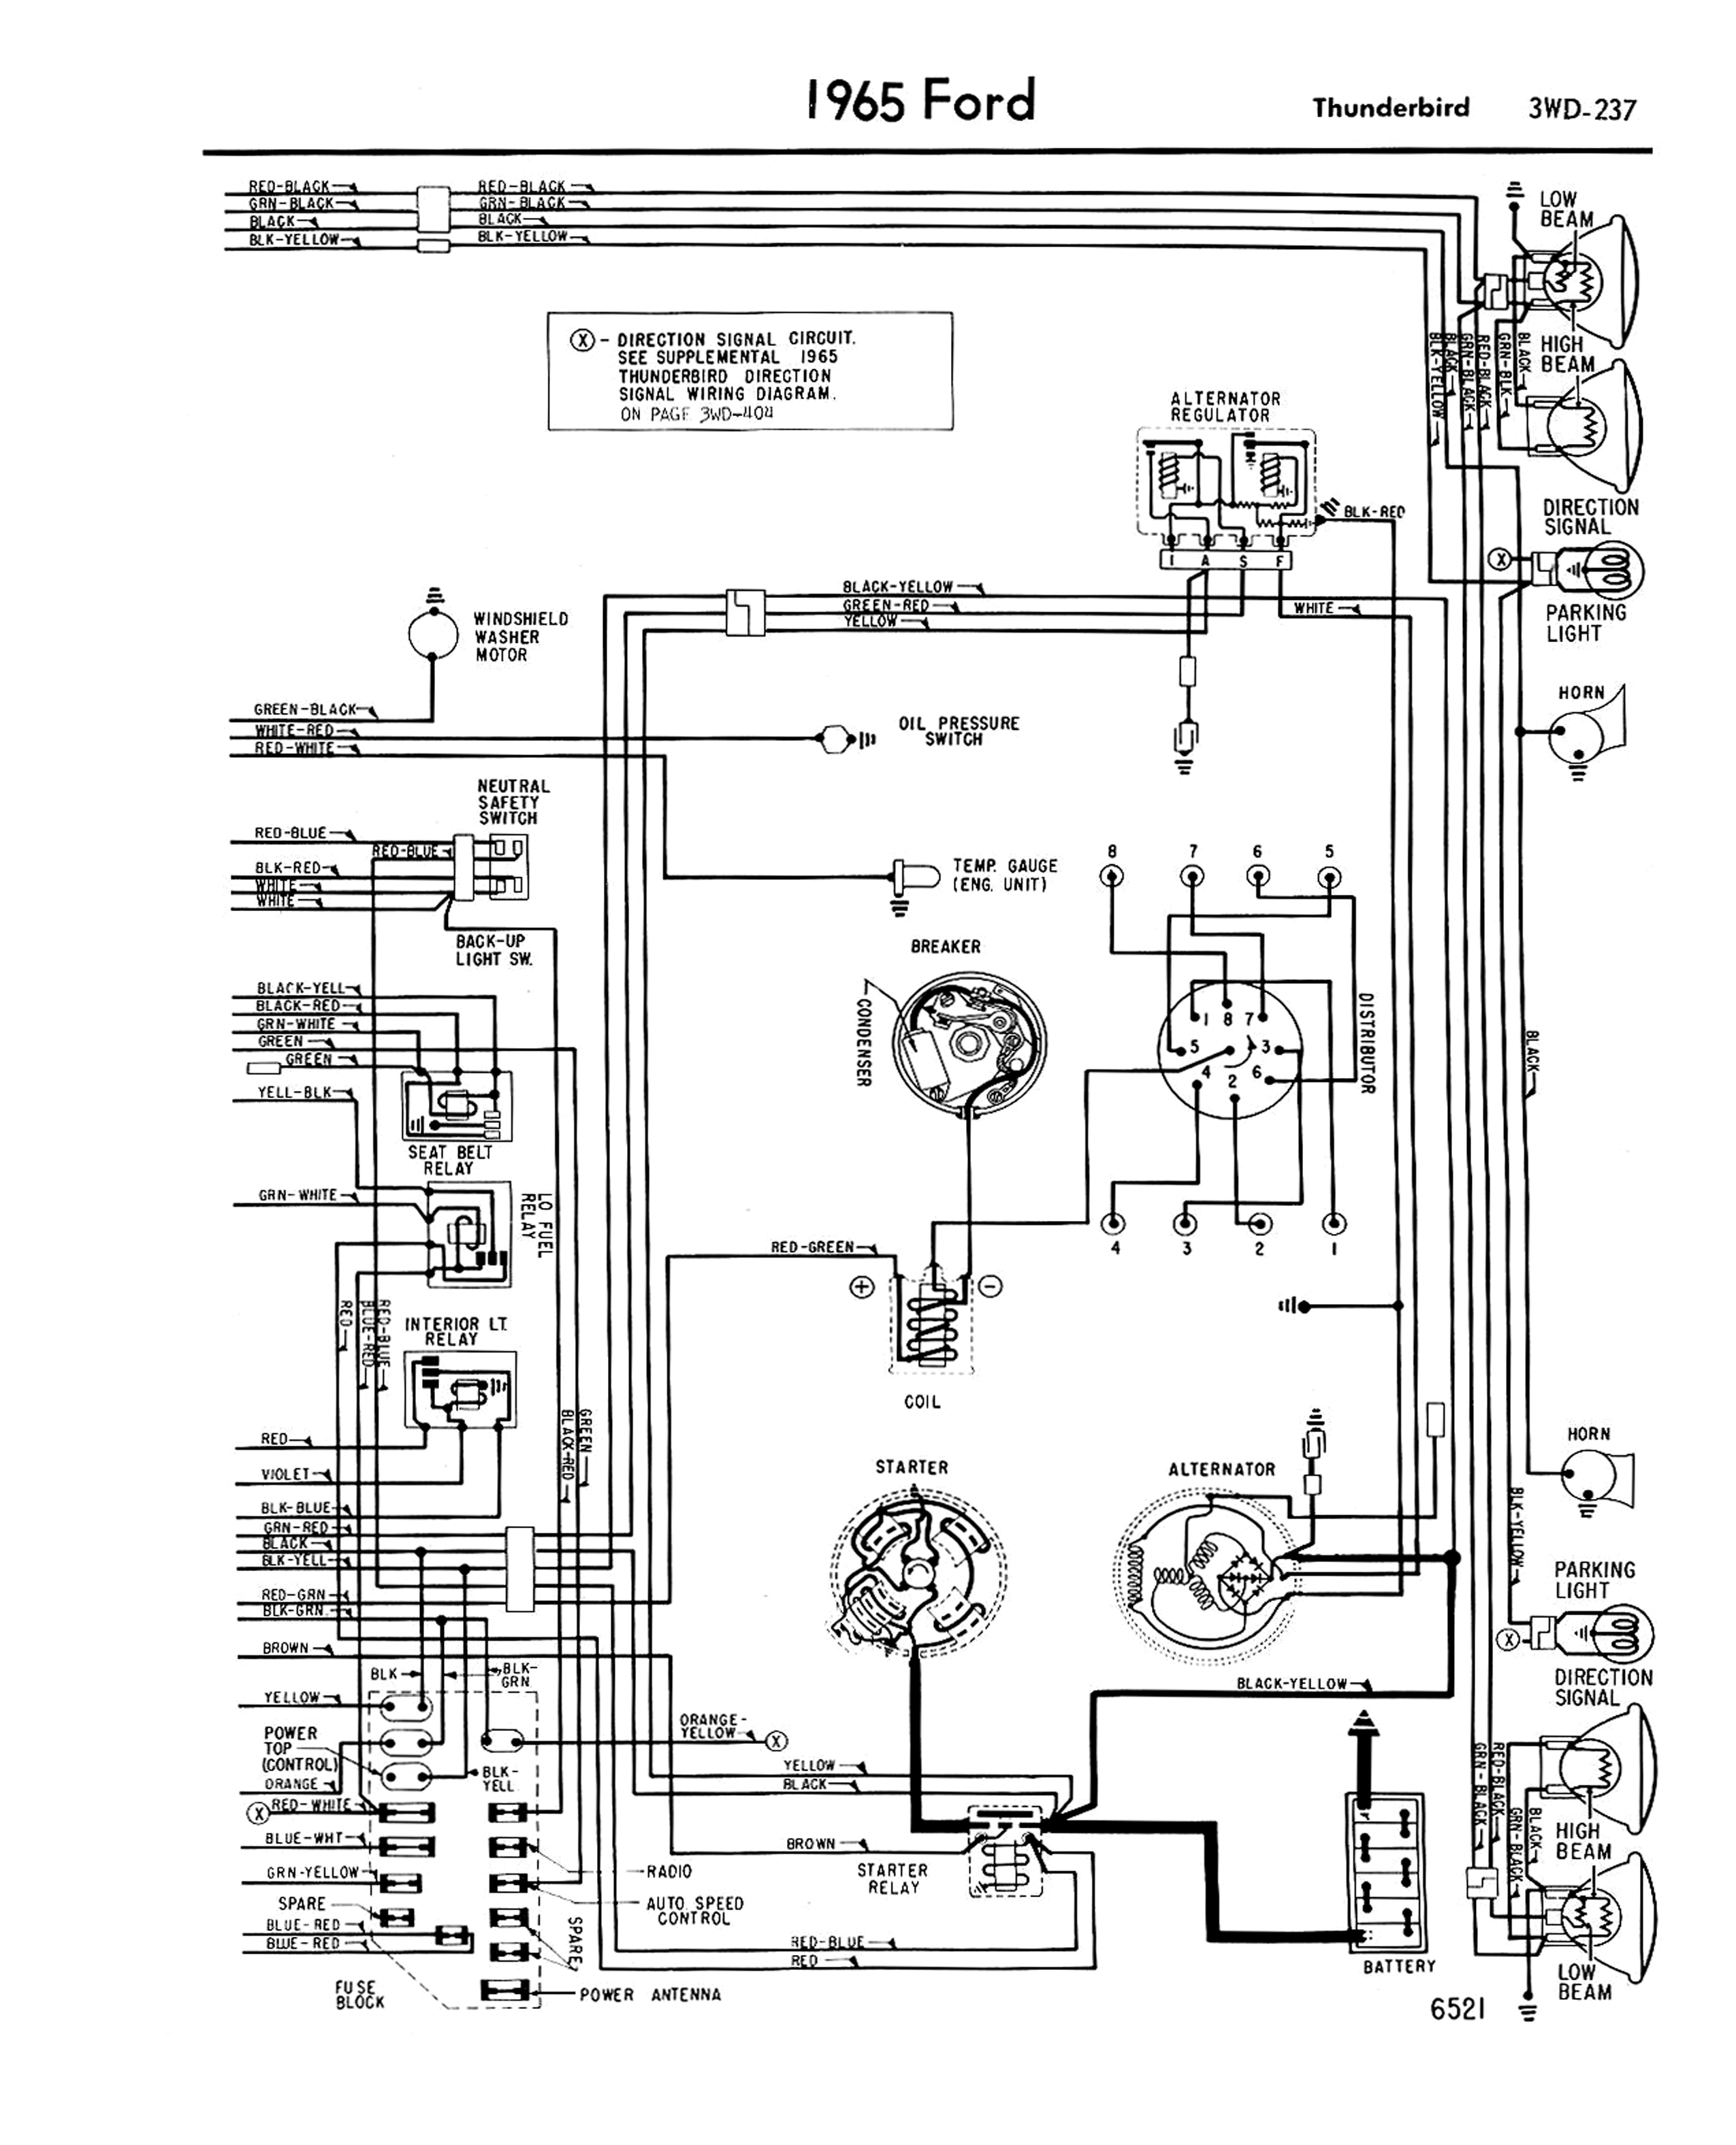 67 Camaro Tail Light Wiring Diagram Great Installation Of Simple Brake 1968 Ford Lights Rh 62 Mara Cujas De 1967